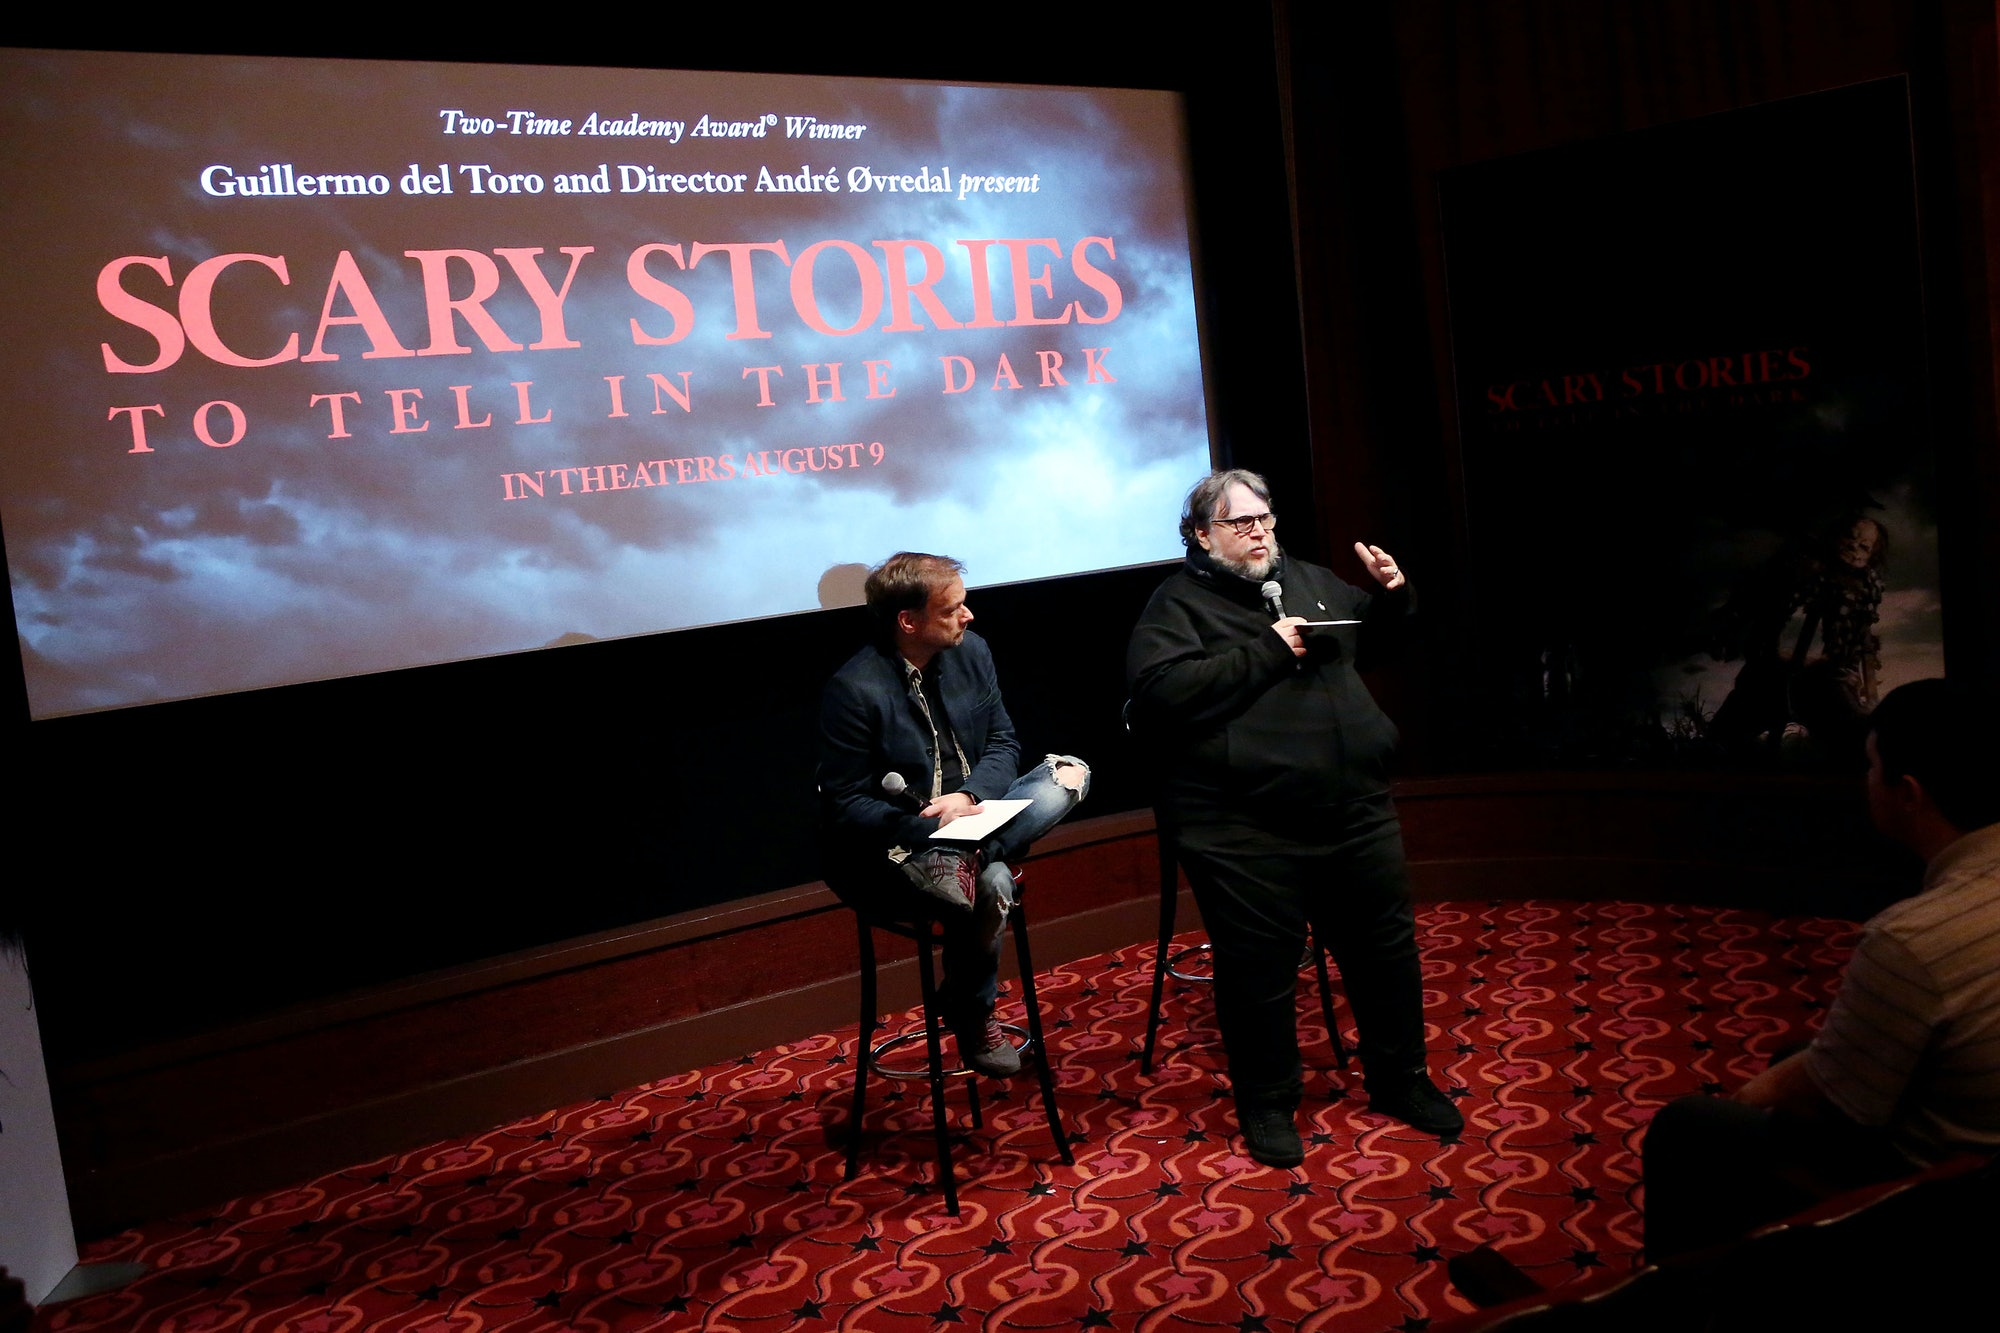 Scary Stories to Tell in the Dark Guillermo del Toro